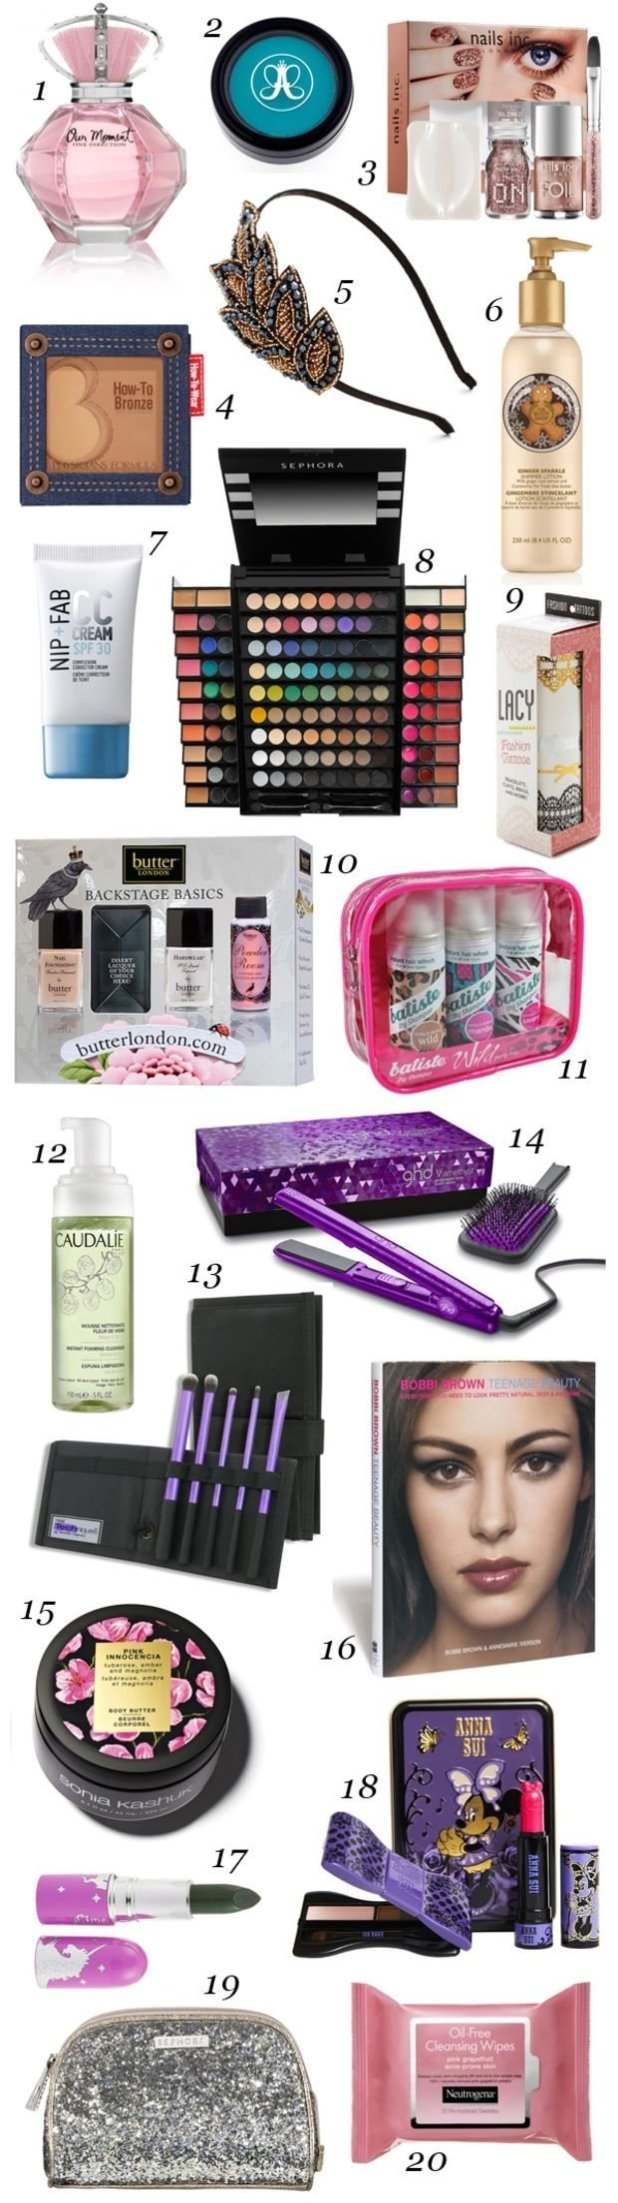 Imágenes de Christmas Gift Ideas For 18 Year Old